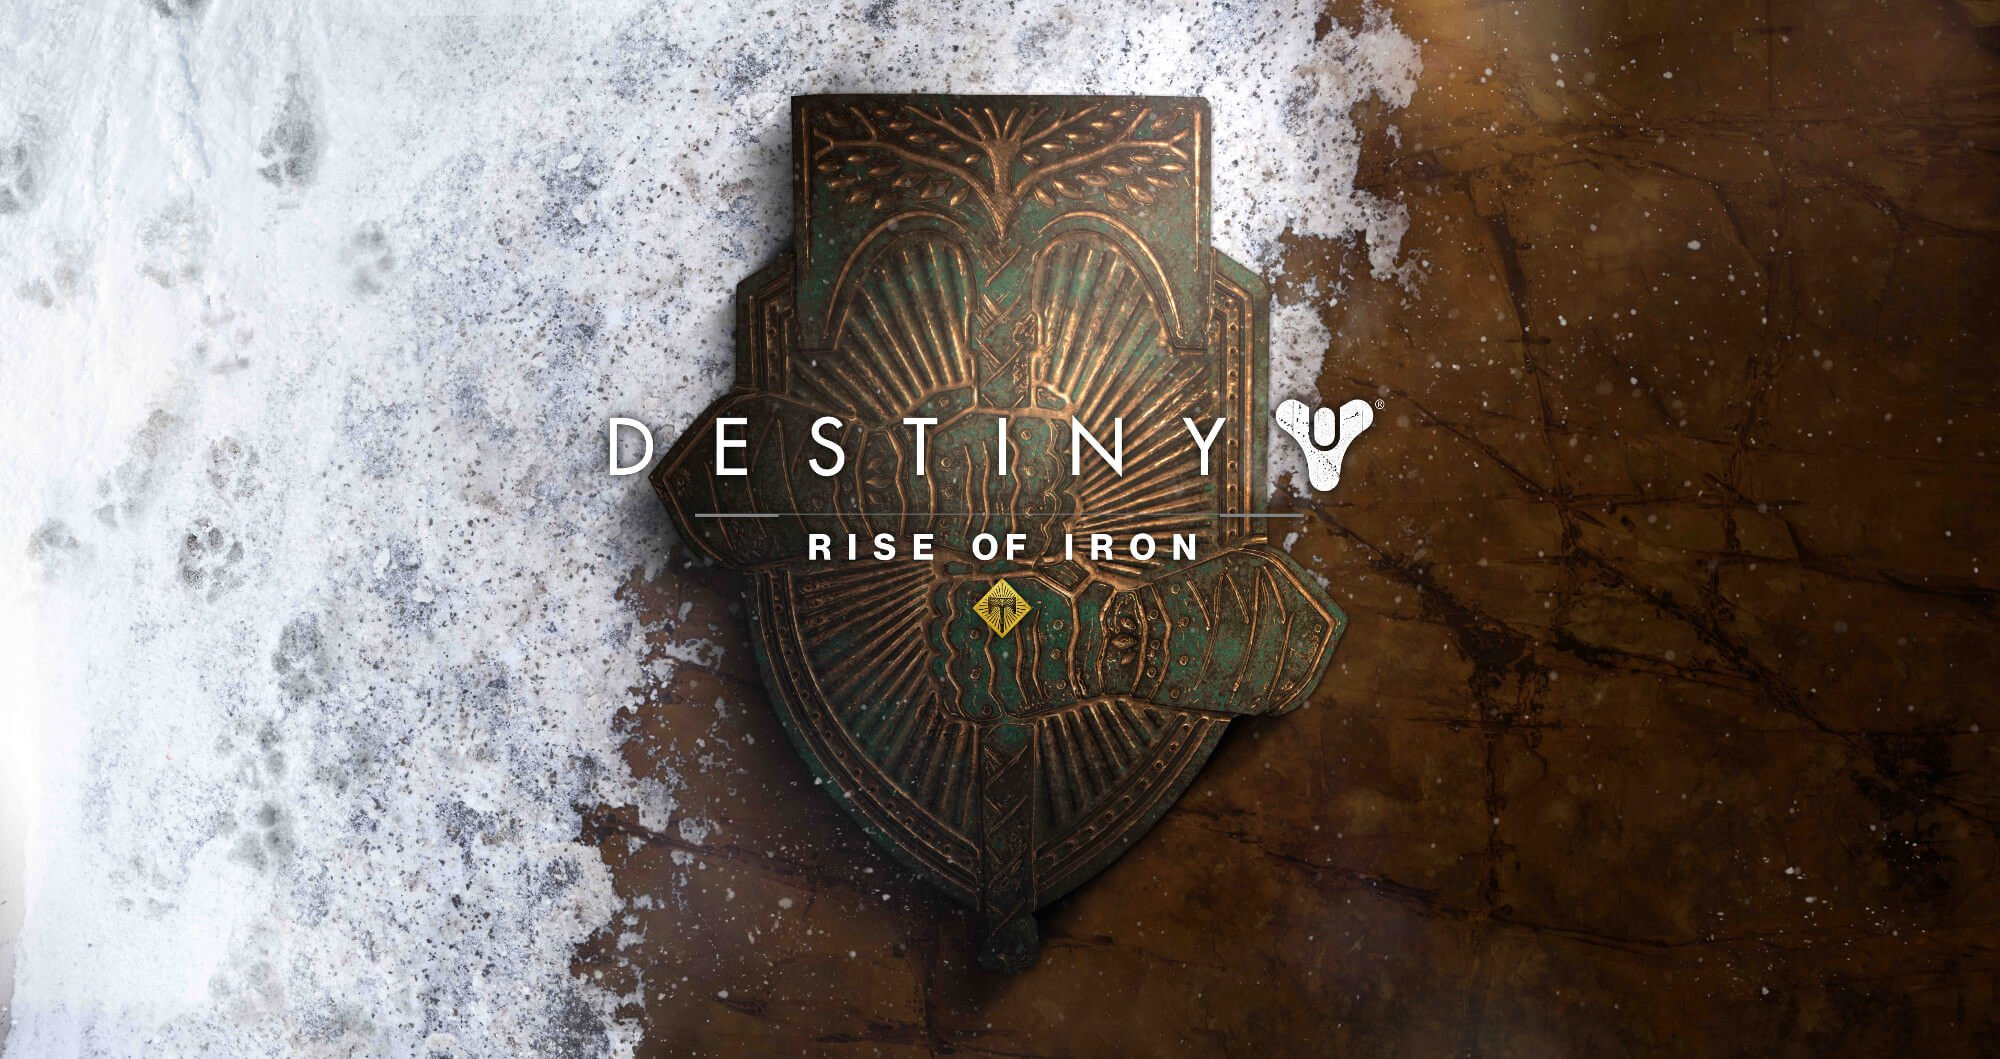 Gamescom: Will the Destiny: Rise of Iron expansion pack satisfy fans?